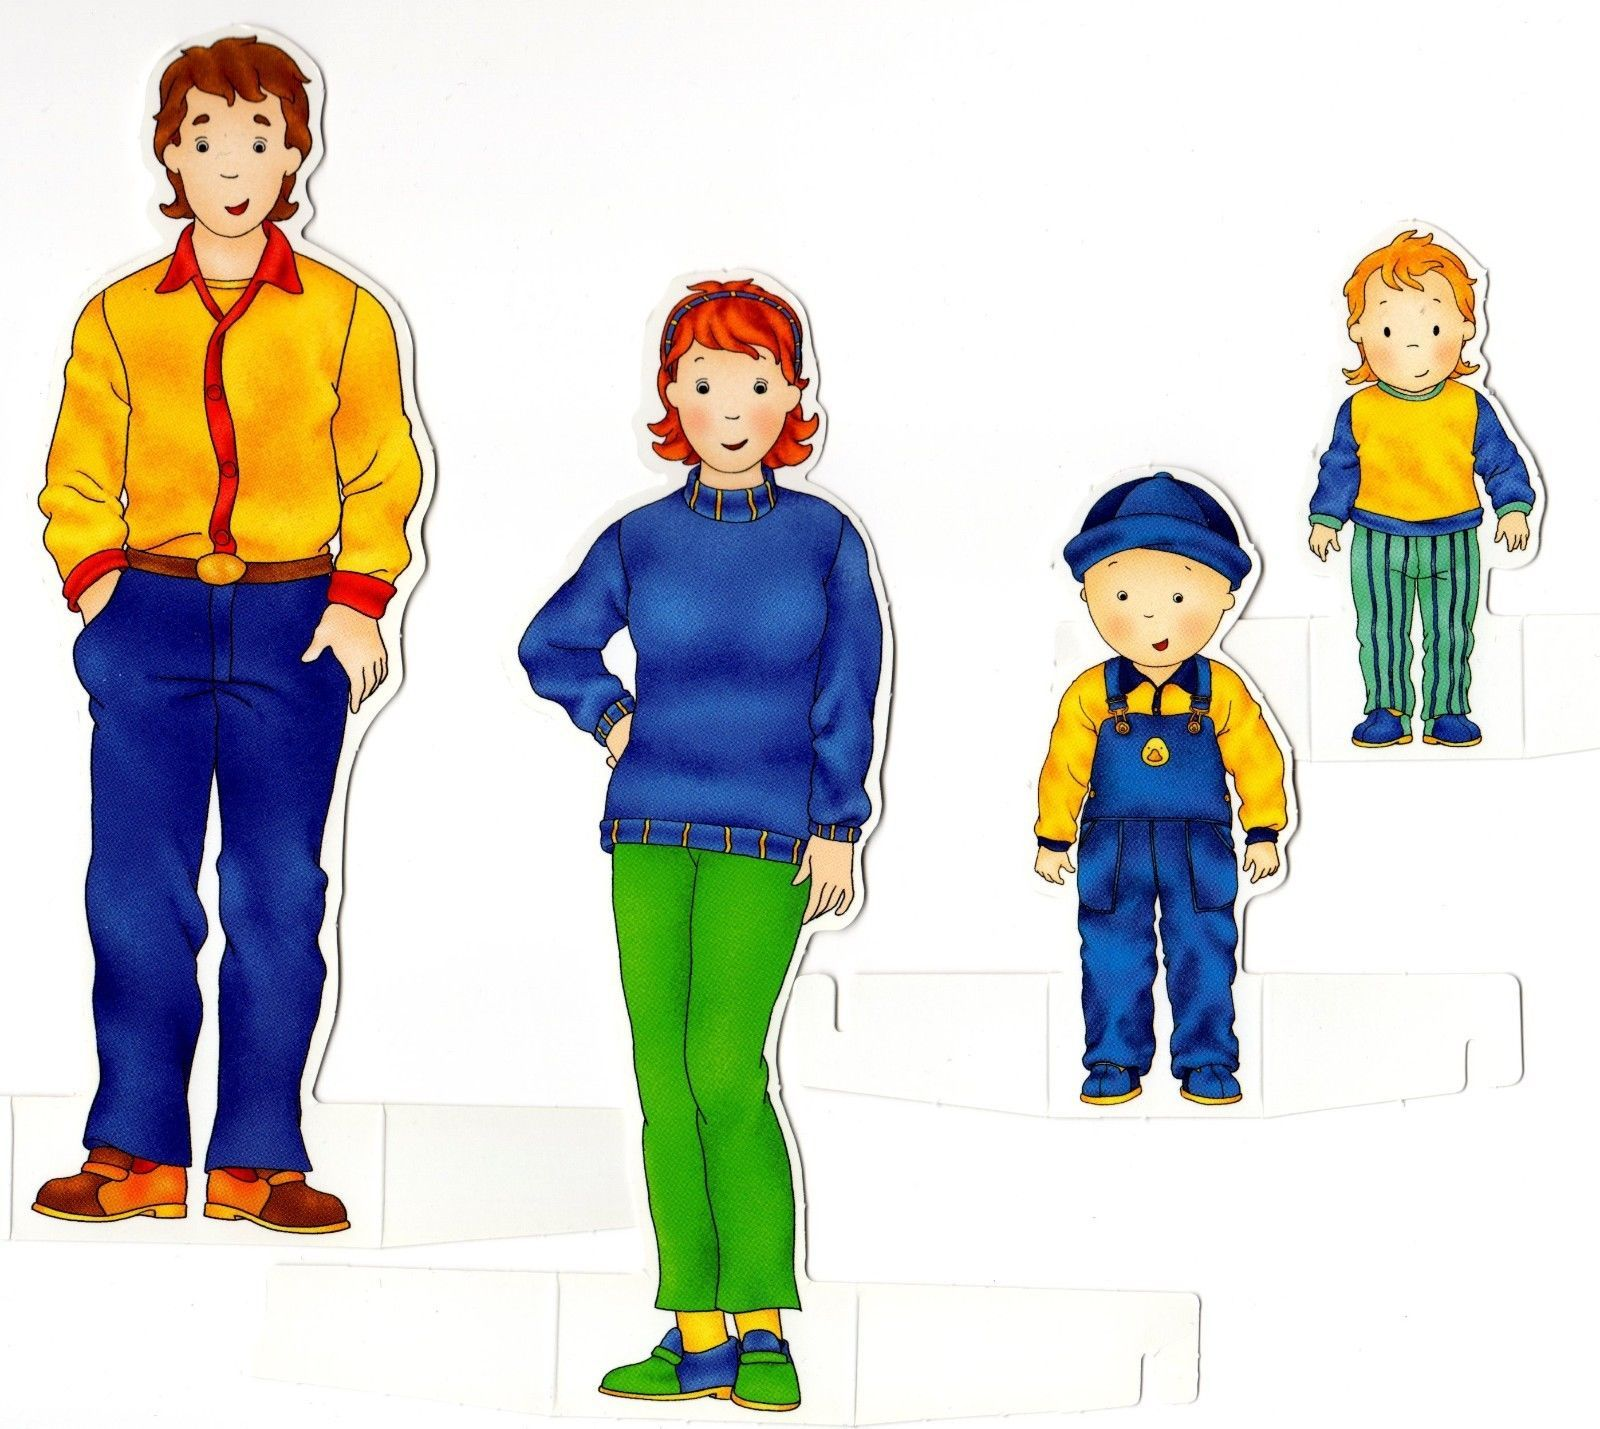 Caillou | Caillou Printables | Pinterest | Caillou, Dads and Dolls